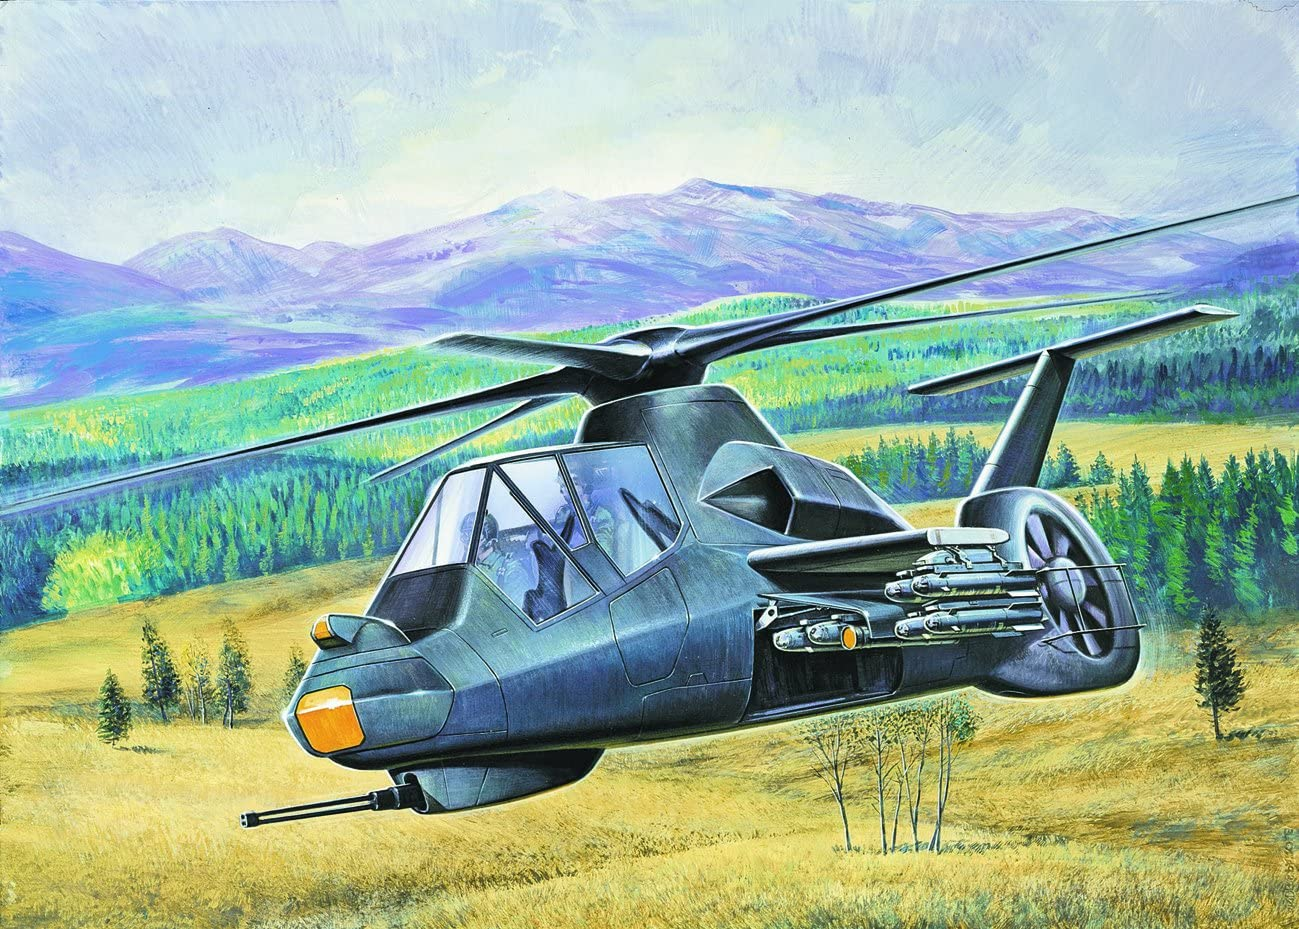 B00061HKWO Italeri 058 RAH-66 Commanche 1/72 Scale Helicopter Model Kit 81ZA4xA11sL